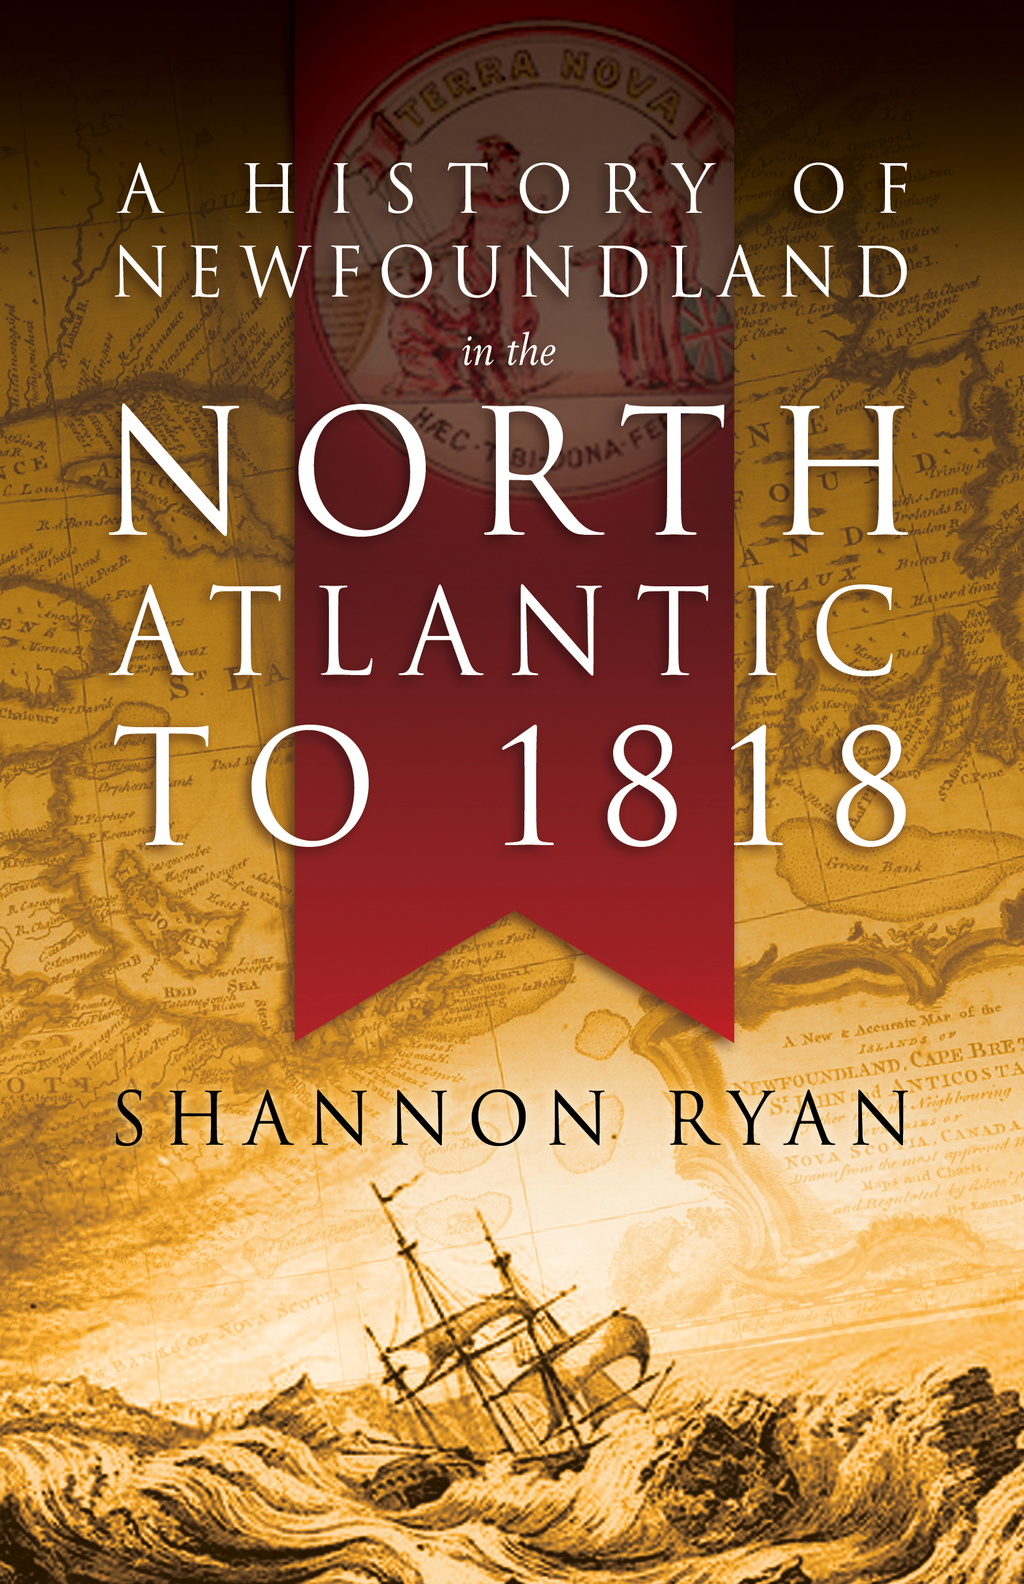 A History of Newfoundland in the North Atlantic to 1818 By: Shannon Ryan